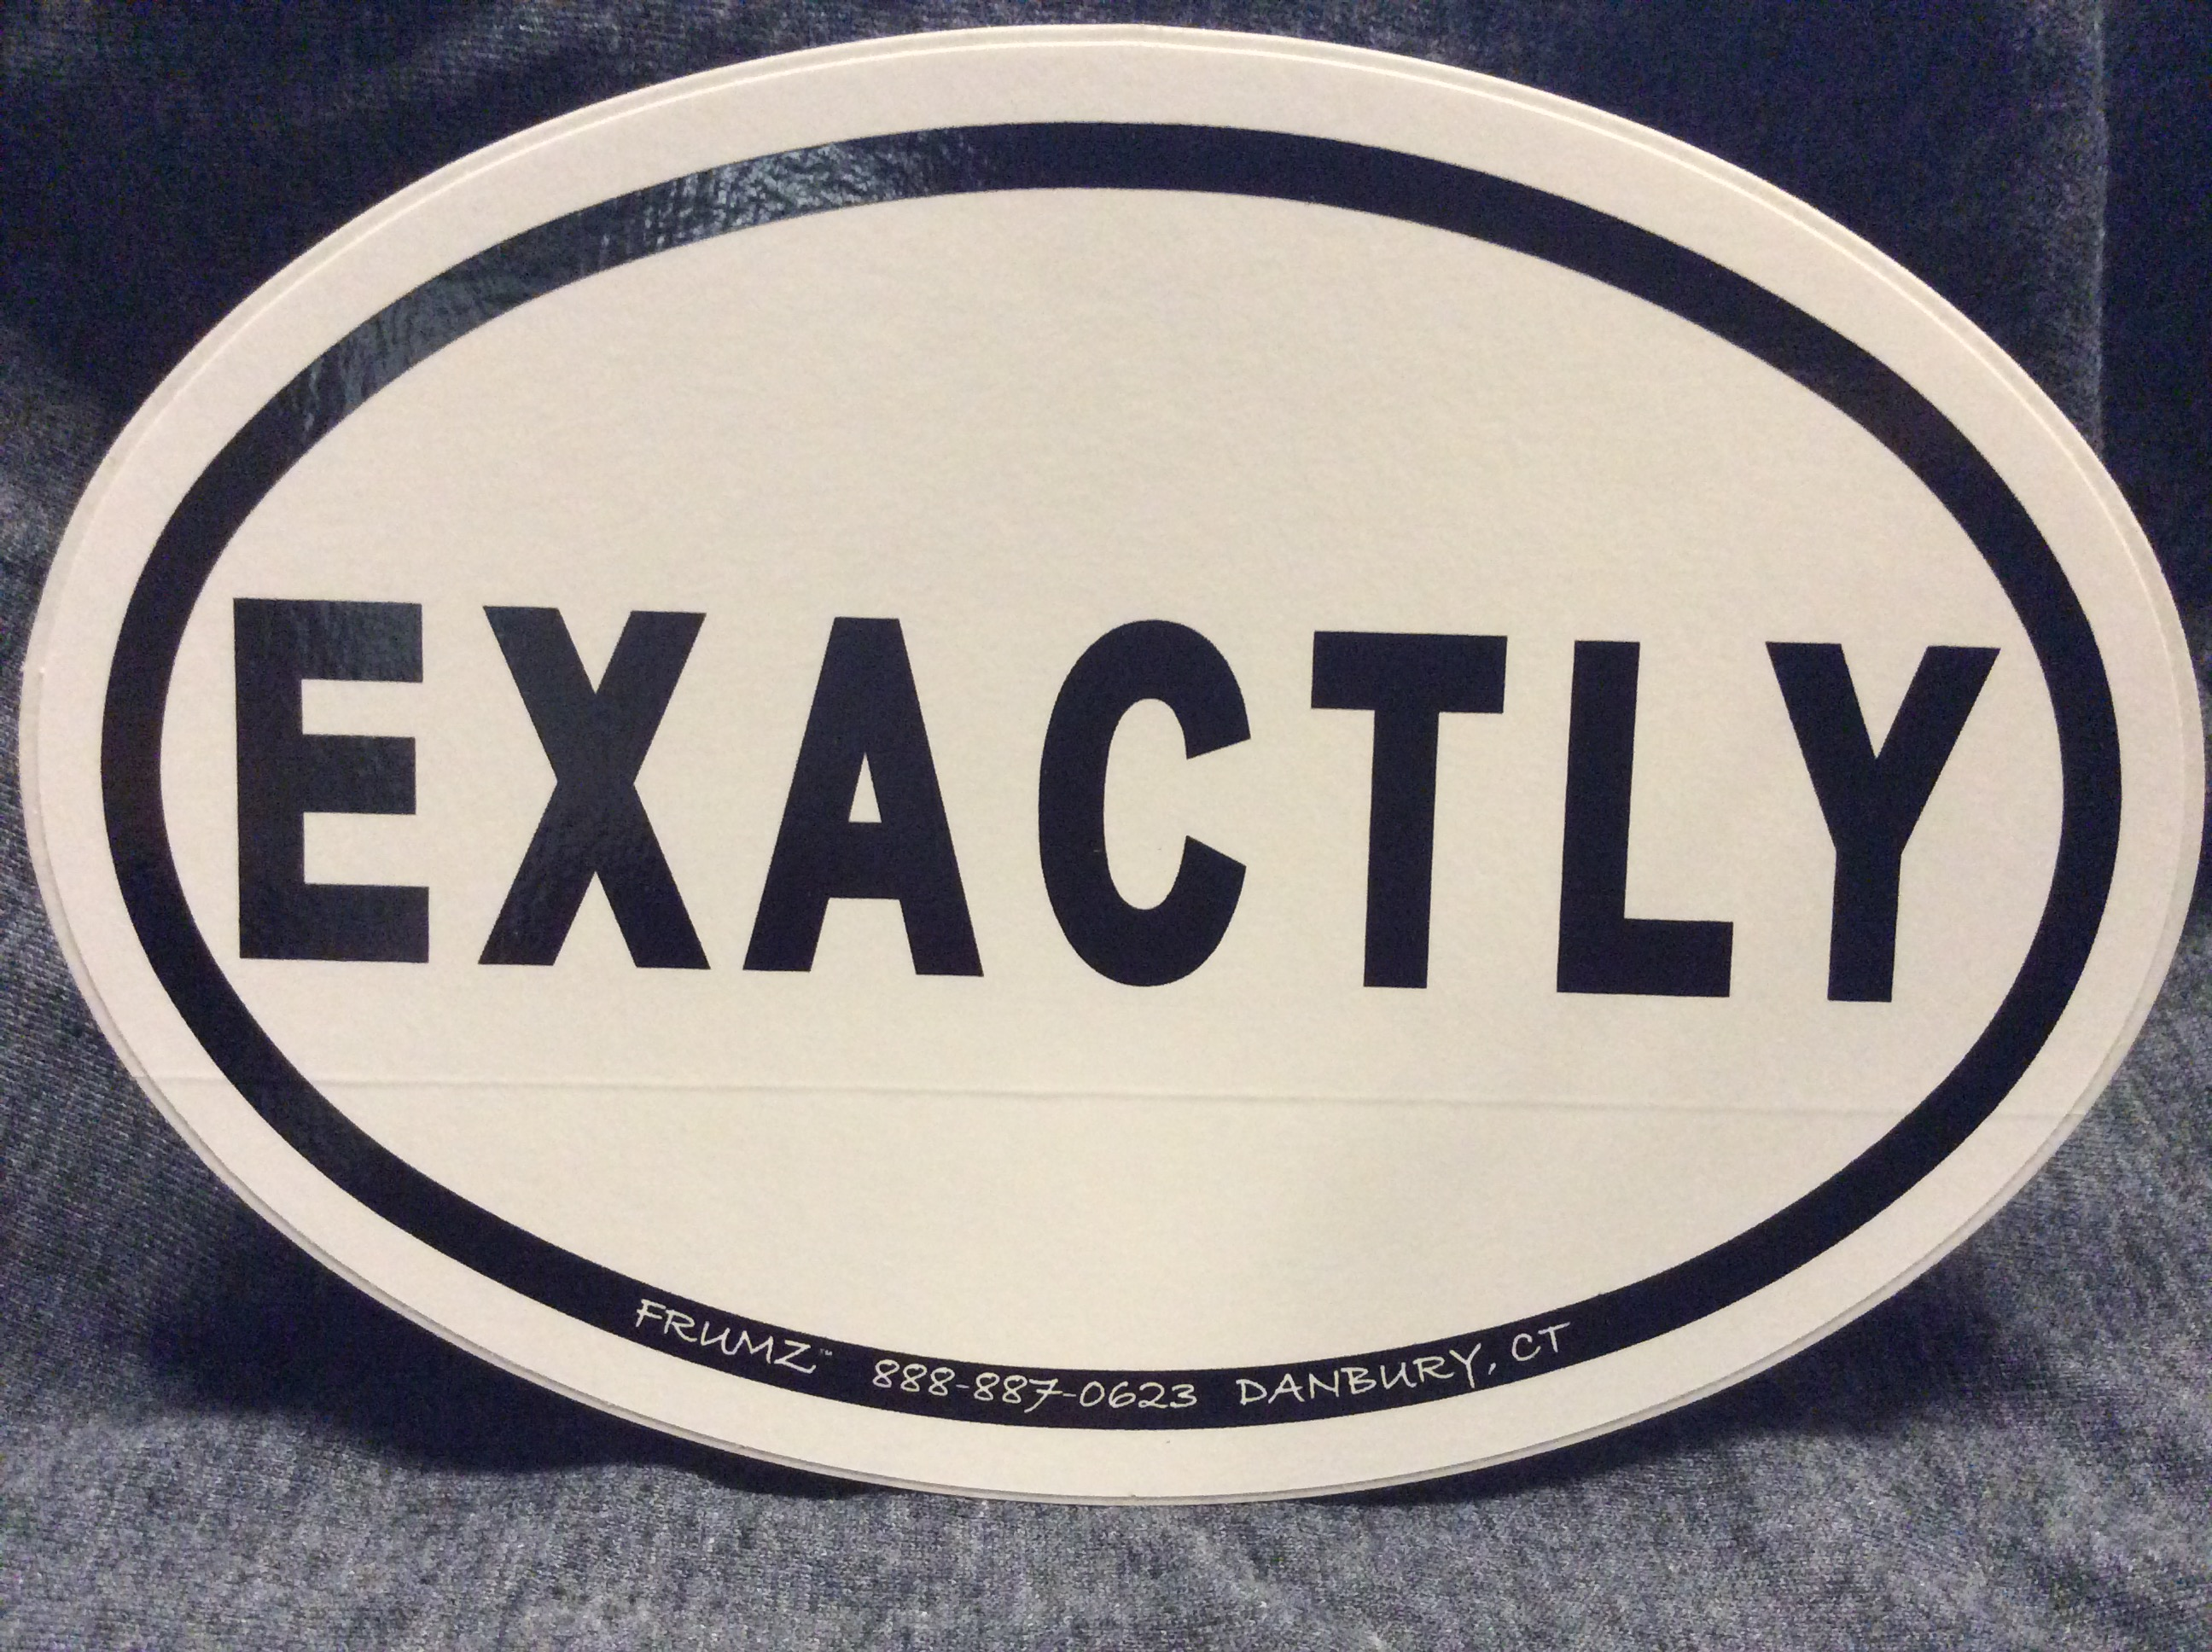 EXACTLY oval sticker decal